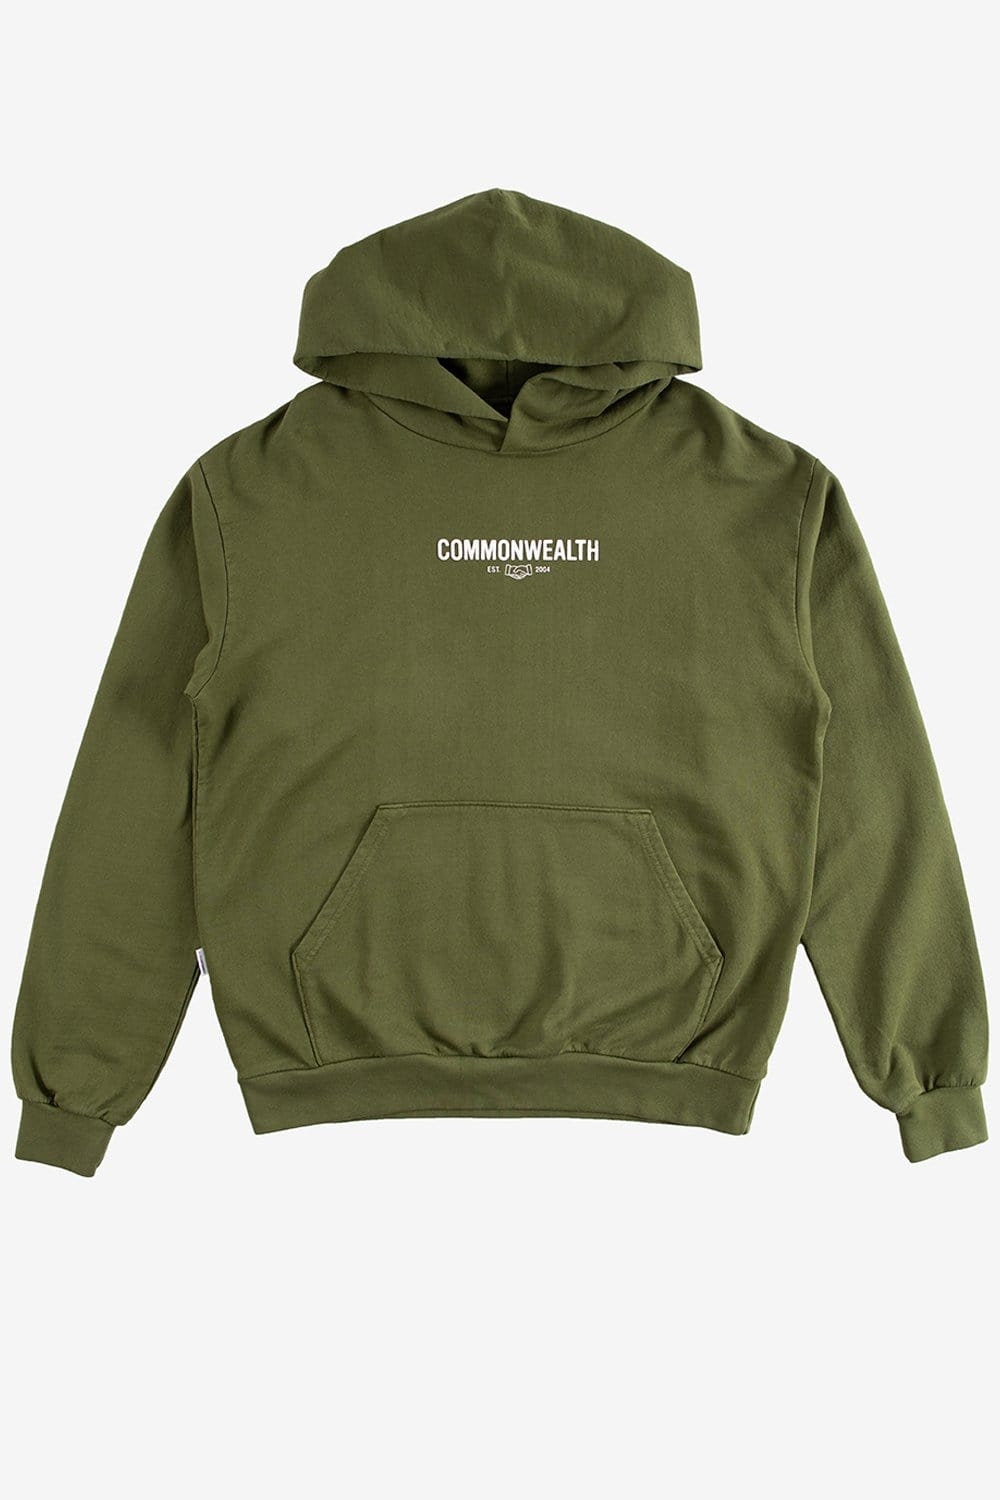 Commonwealth Apparel Classic Lightweight Hoodie